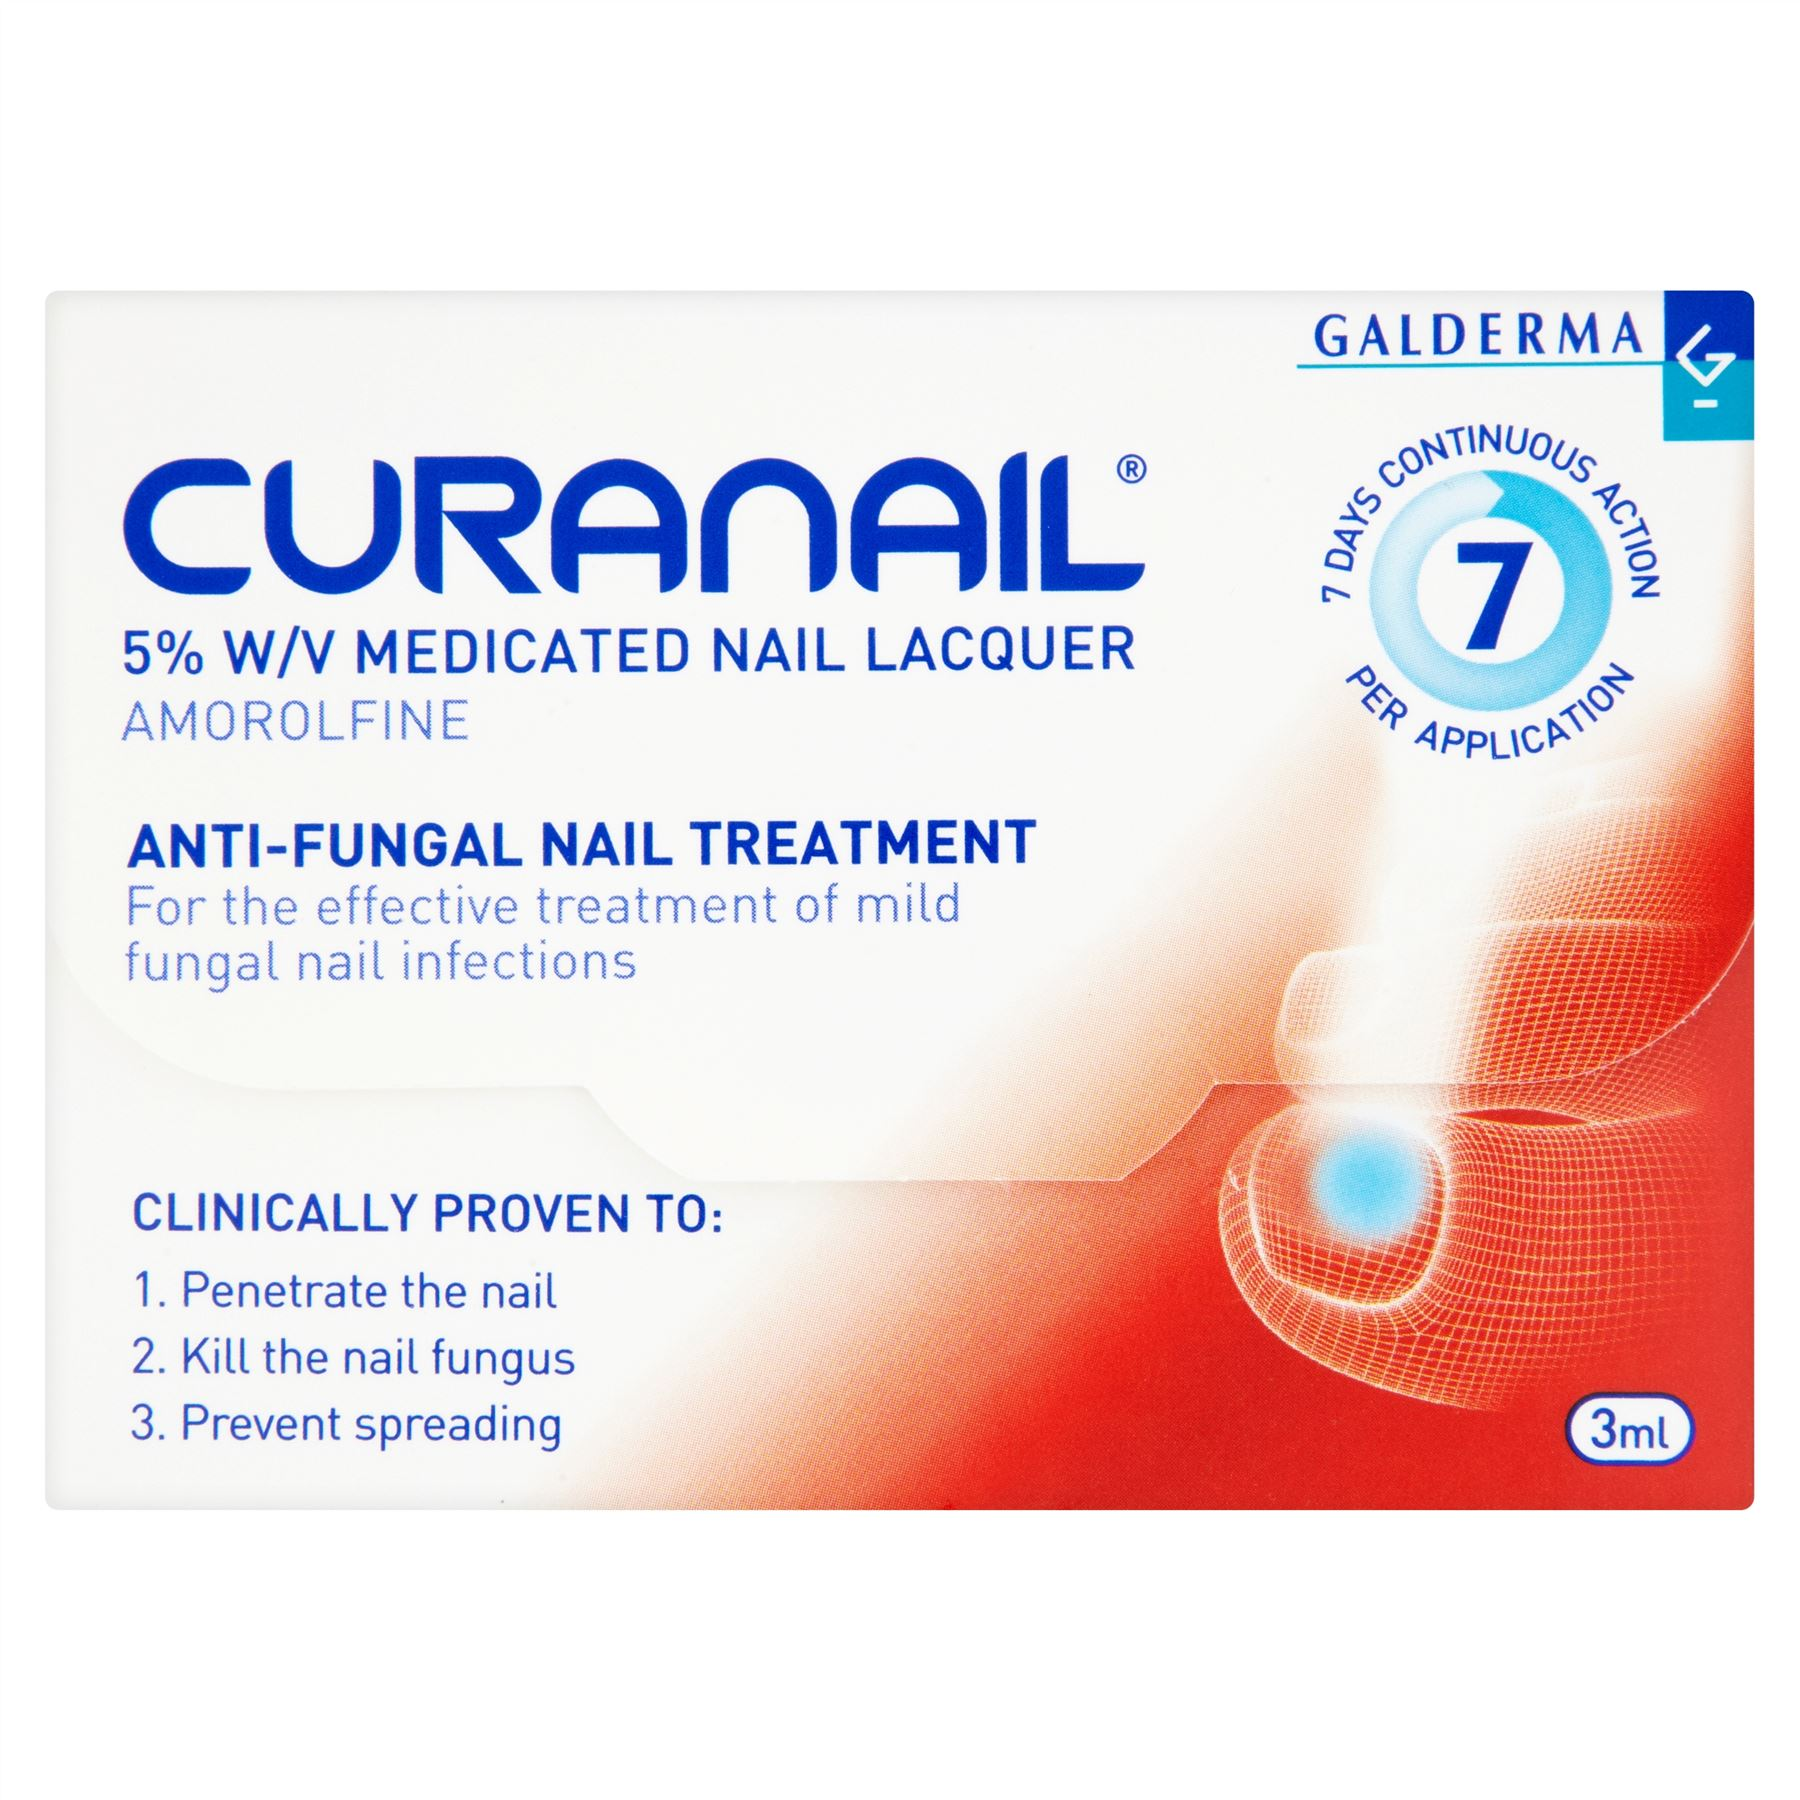 Amorolfin from nail fungus - reviews and prices in pharmacies